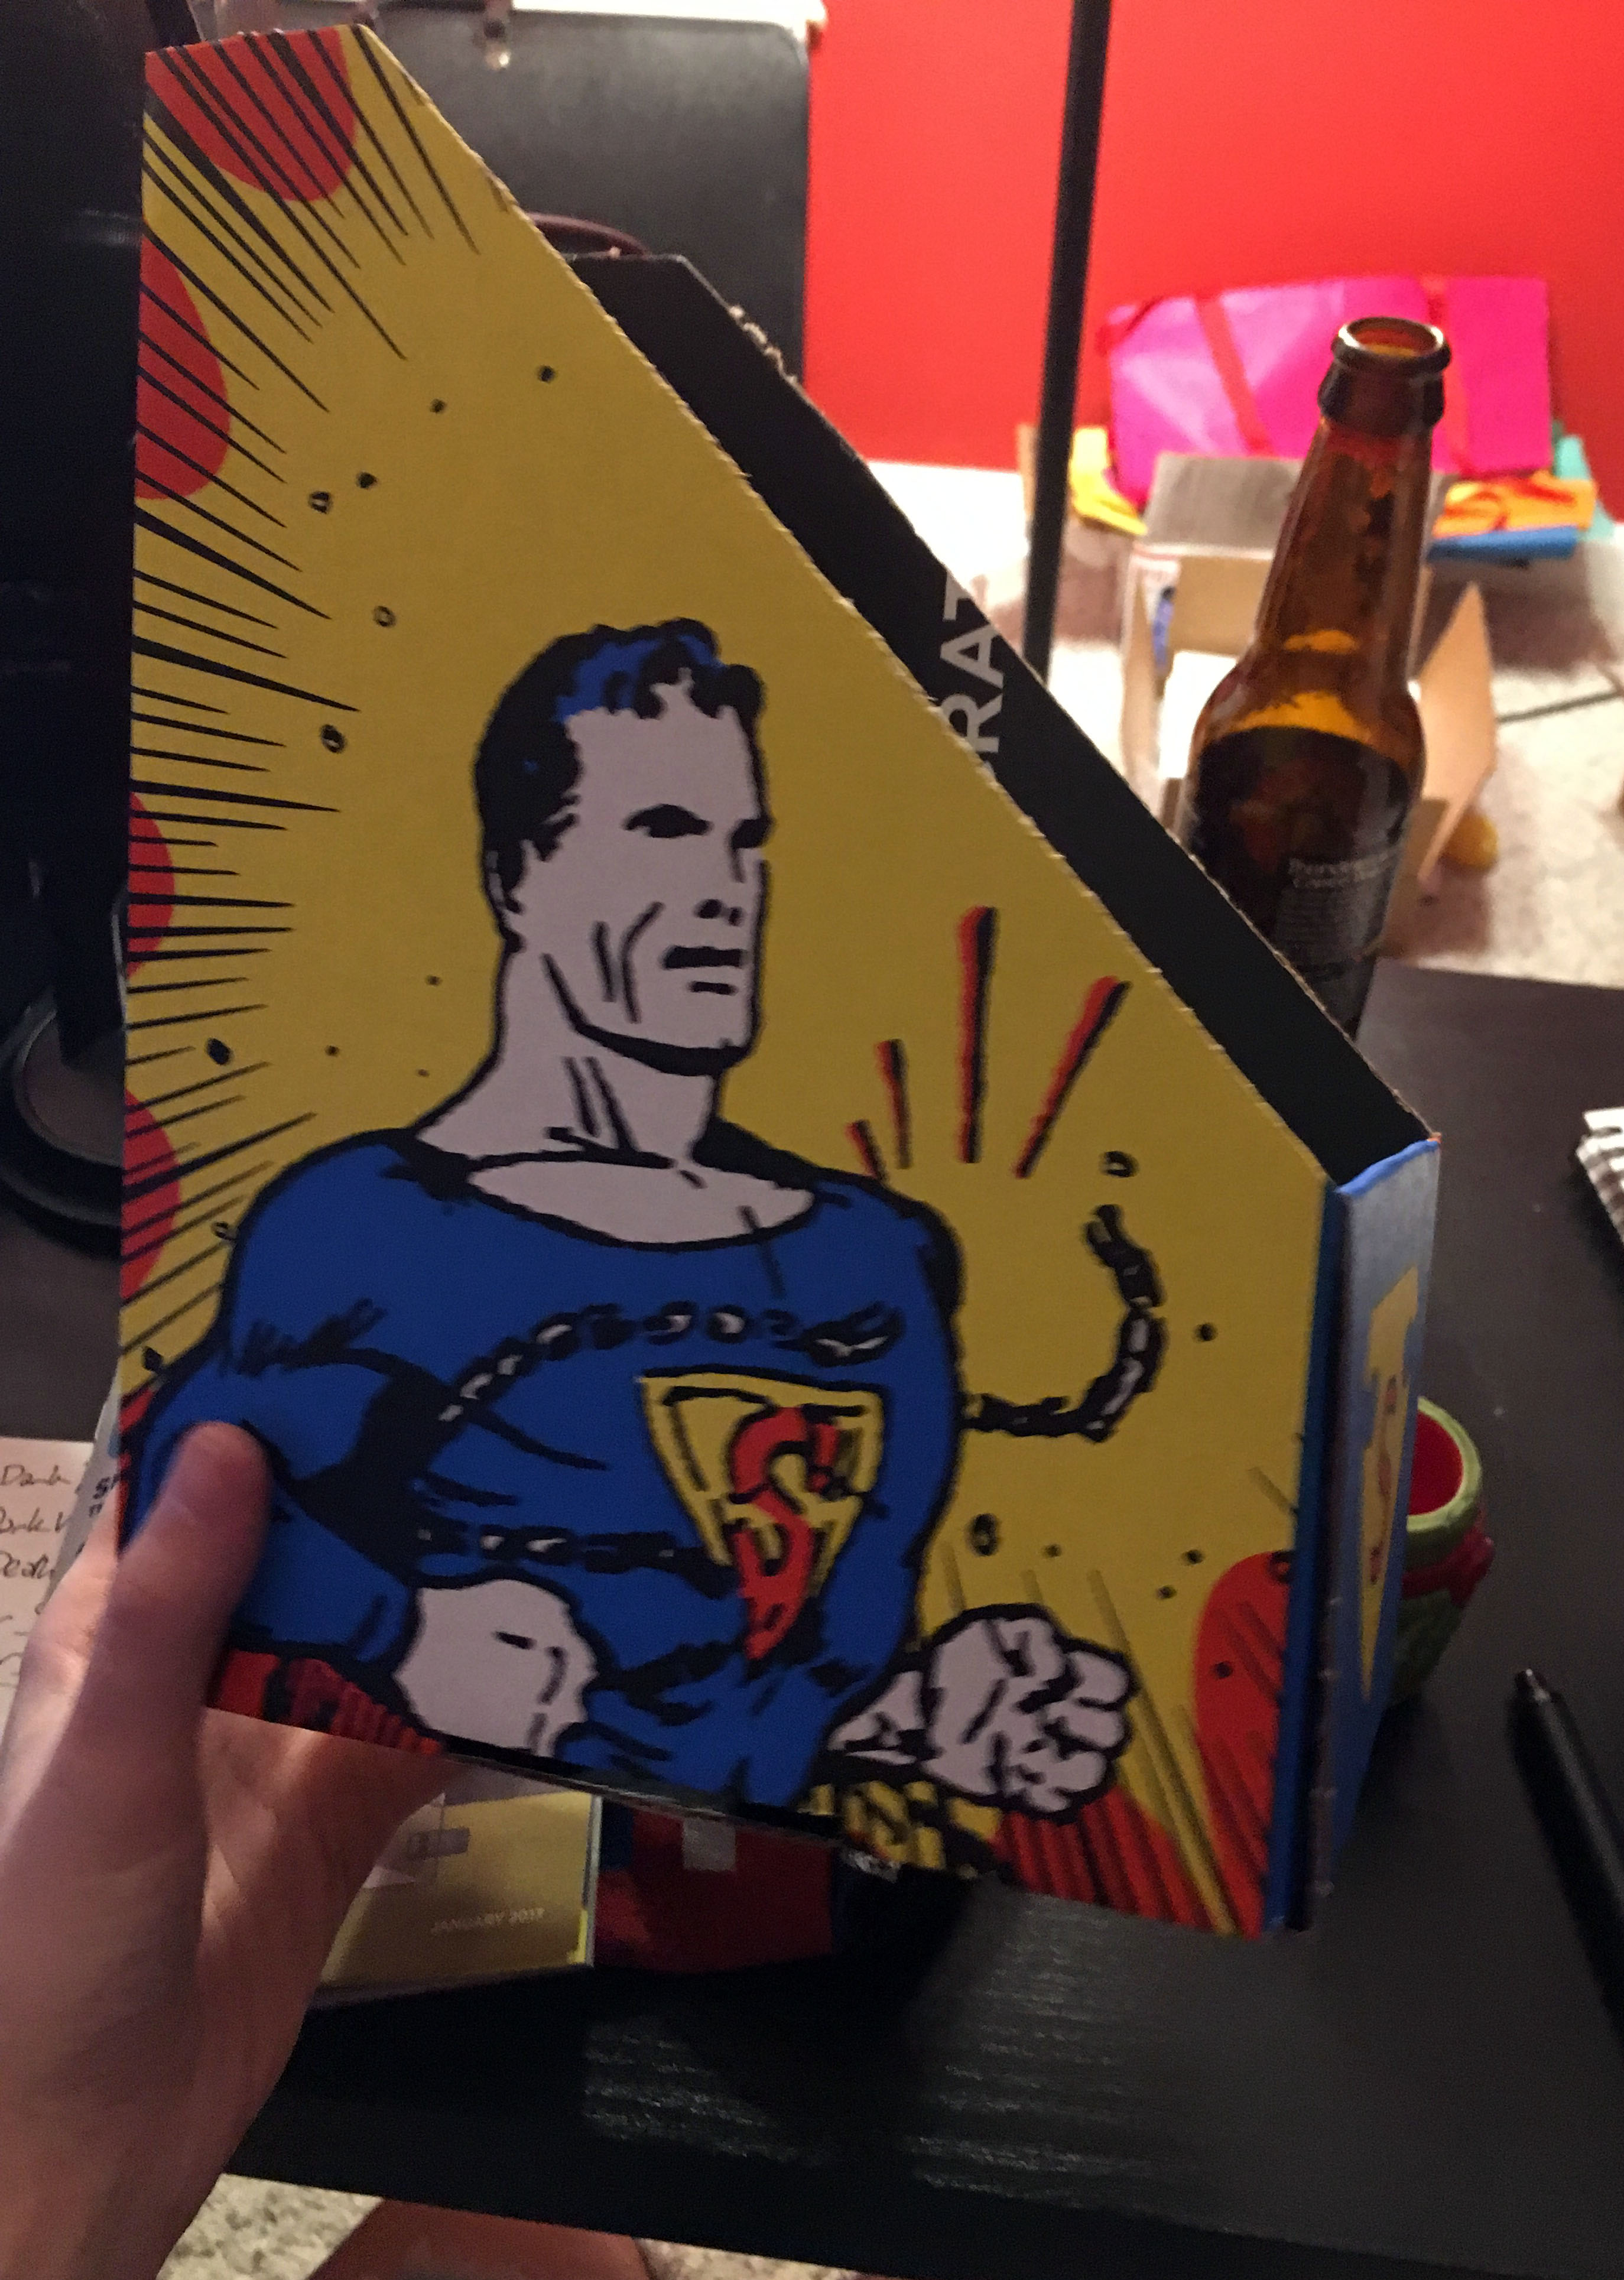 You could turn the box into a comics holder!